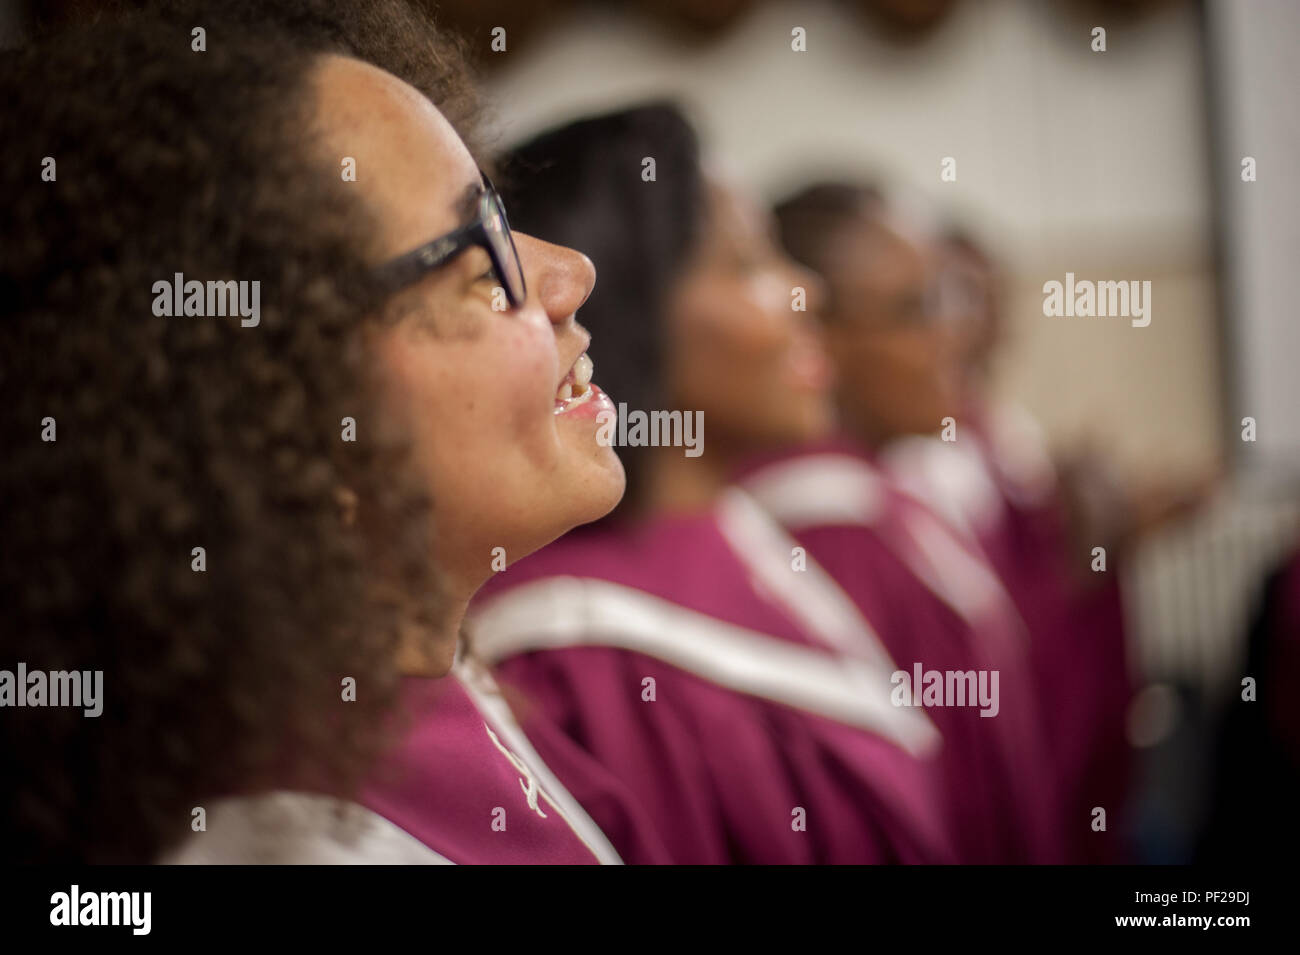 Tracy Naveau, a member of the Voices of Victory choir sings